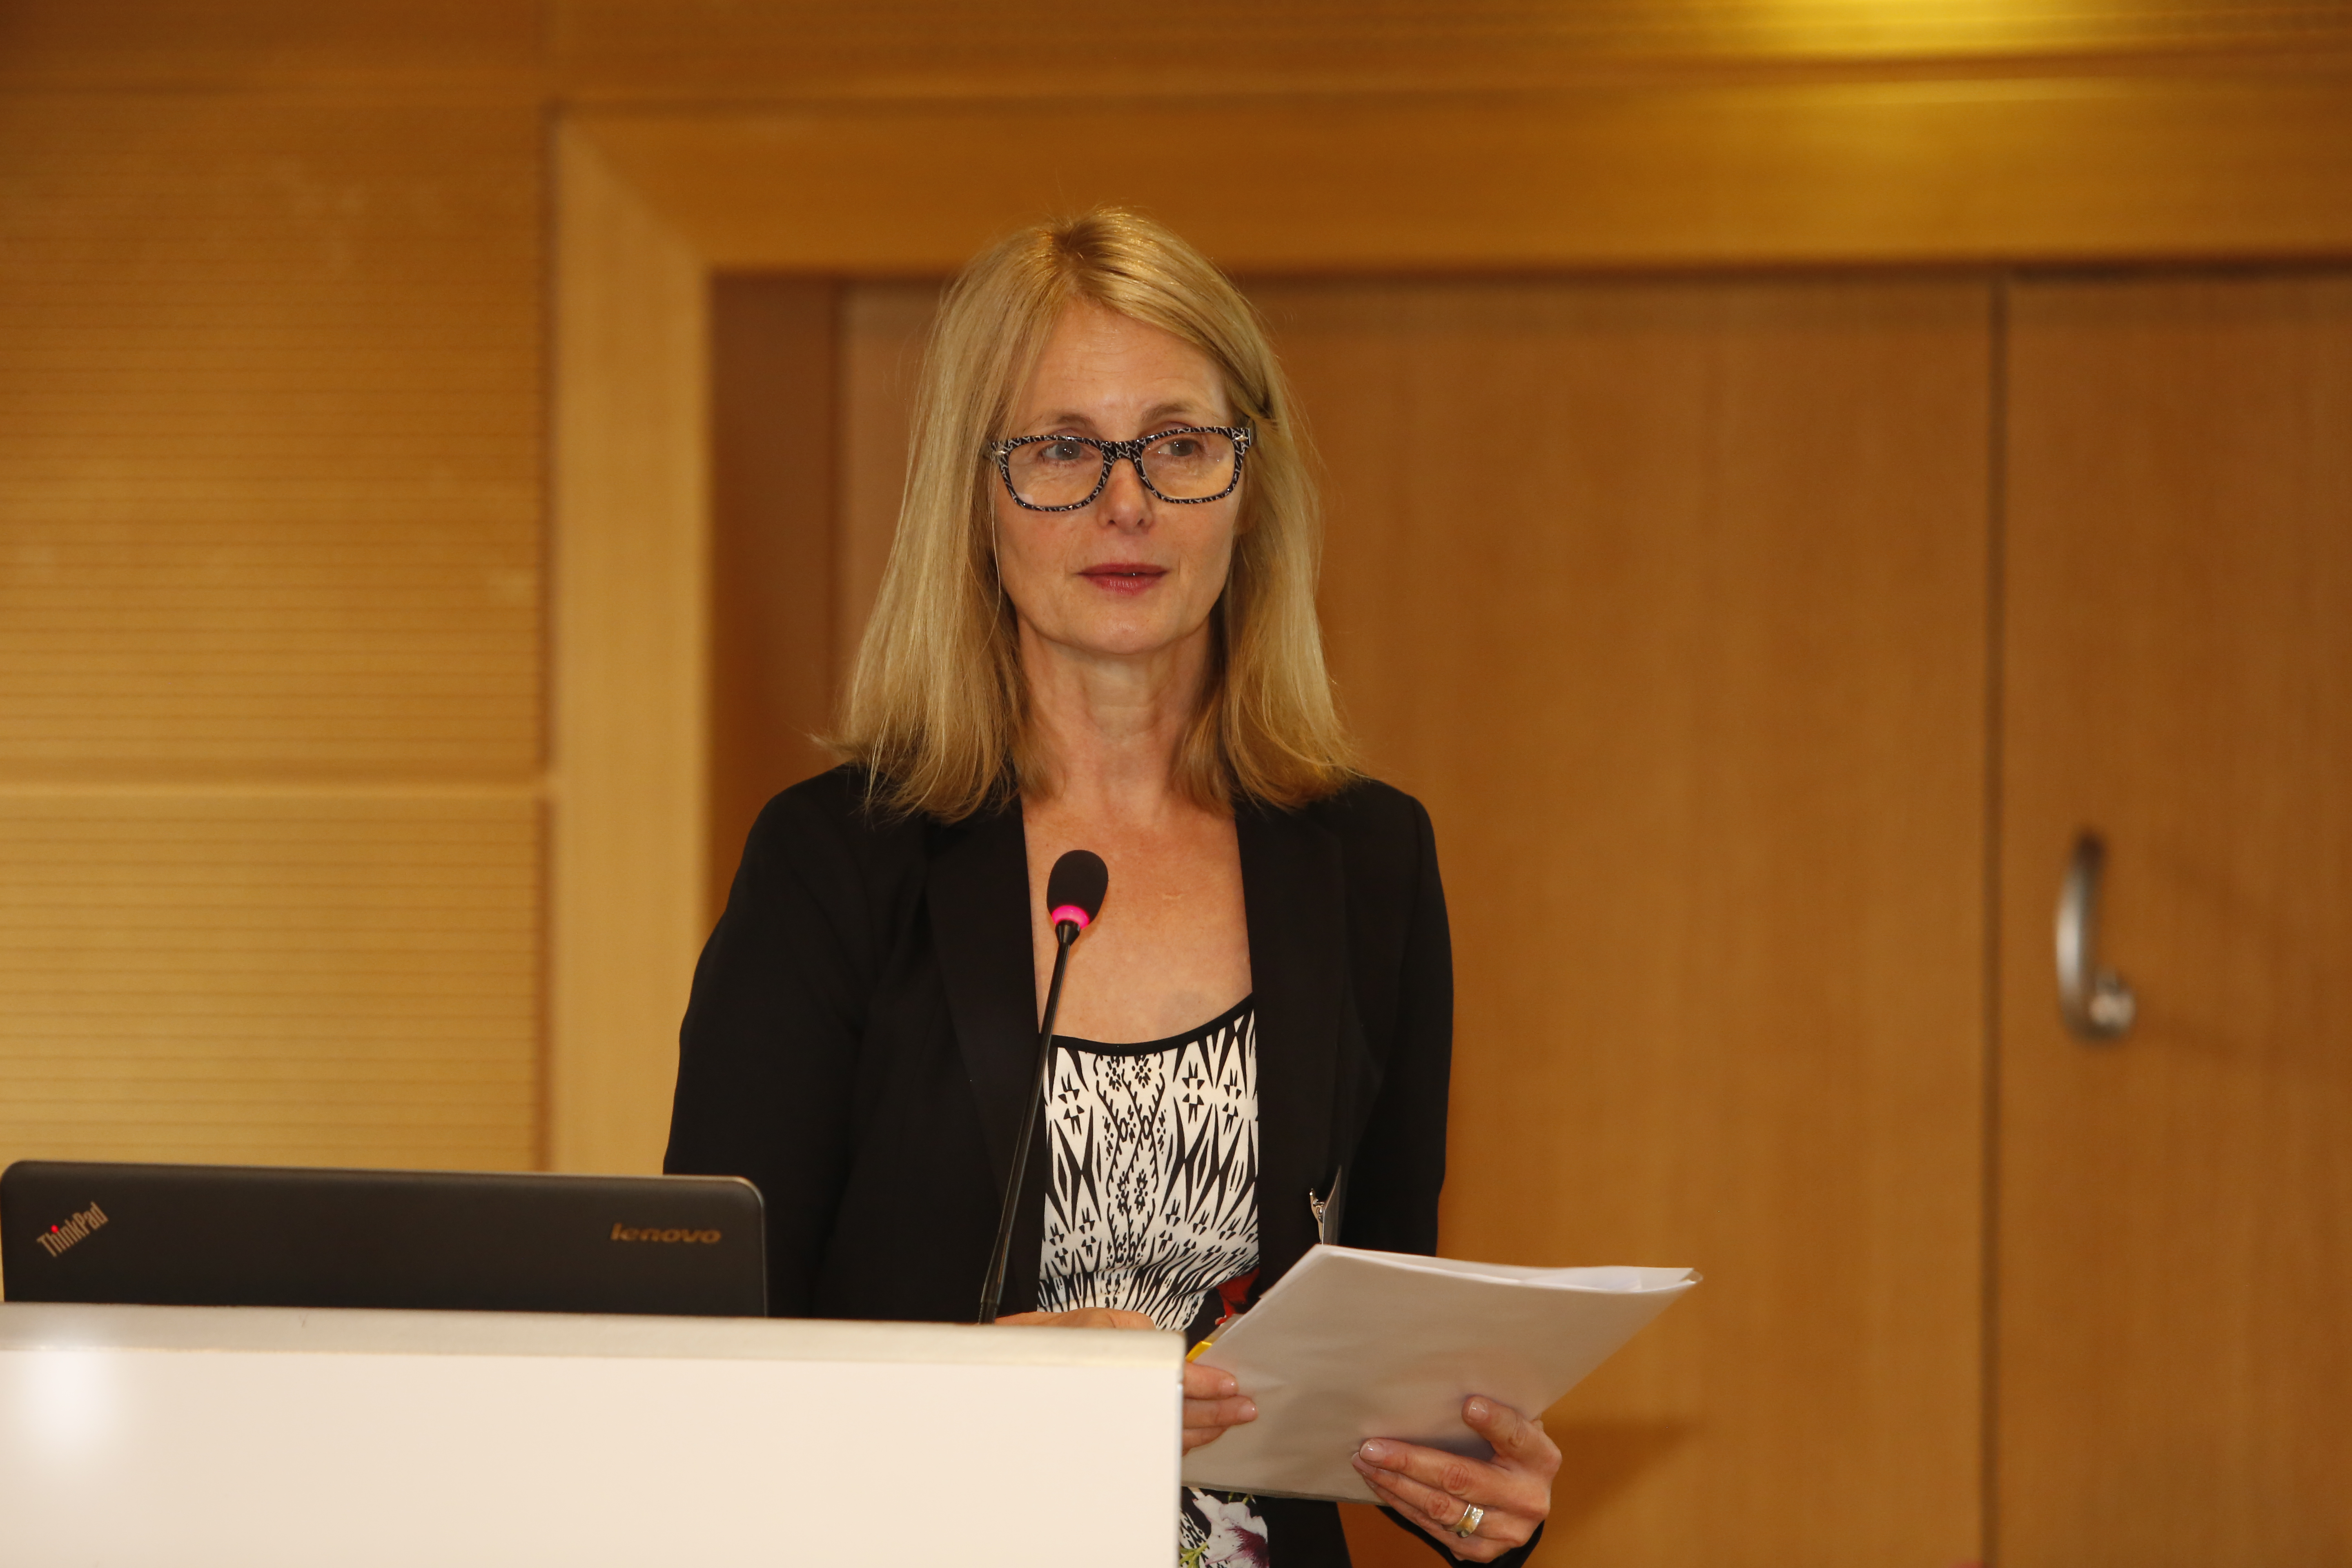 6th conference on aspects of European Consumer Law in pictures